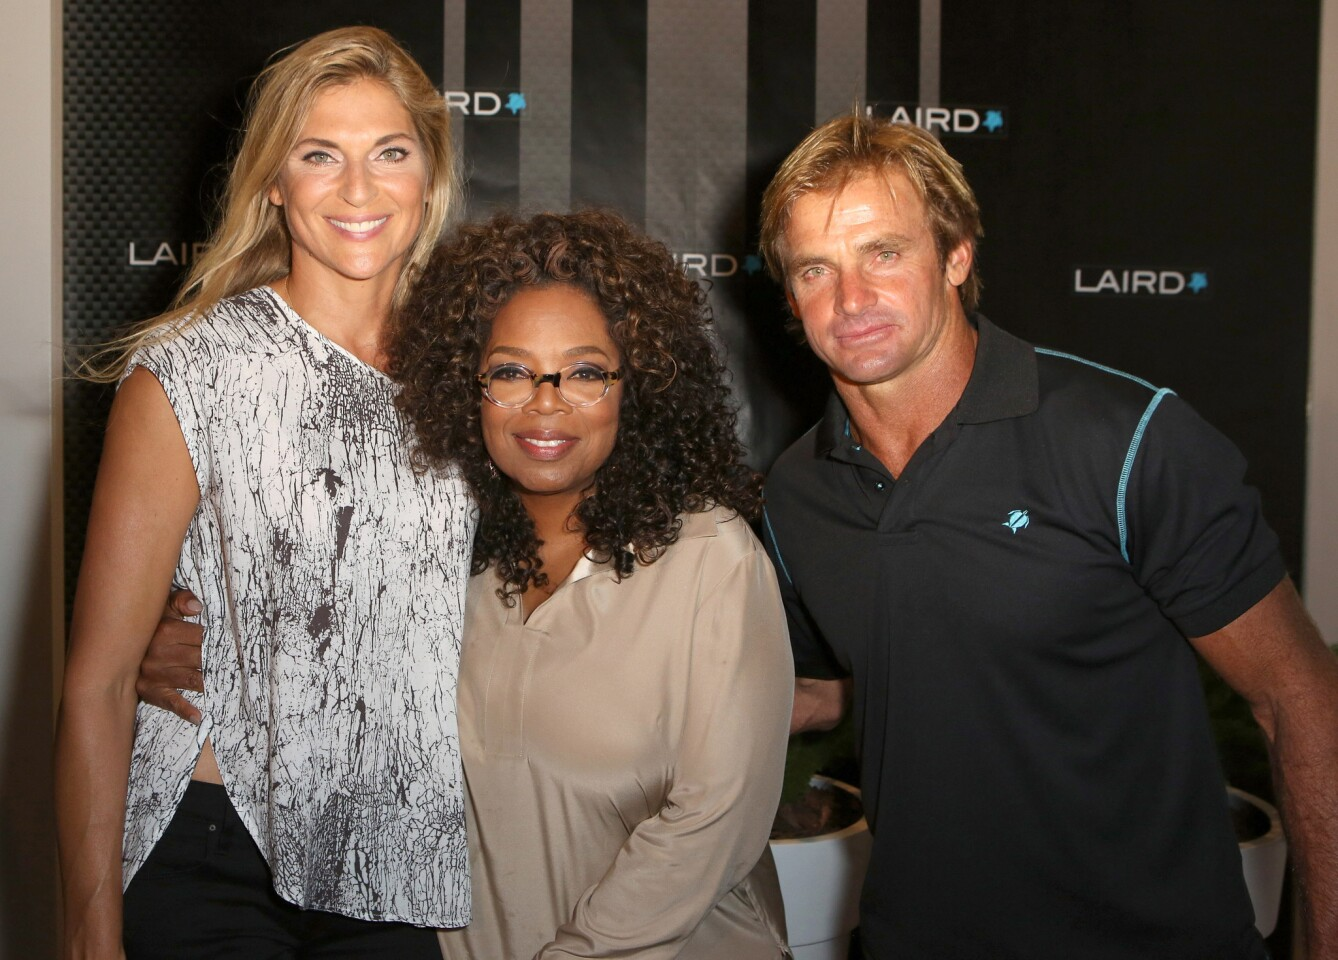 Professional volleyball player Gabrielle Reece (who also happens to be Laird Hamilton's wife), Oprah Winfrey and professional surfer Laird Hamilton at the Oct. 22 launch party of Laird Apparel at Ron Robinson Santa Monica.